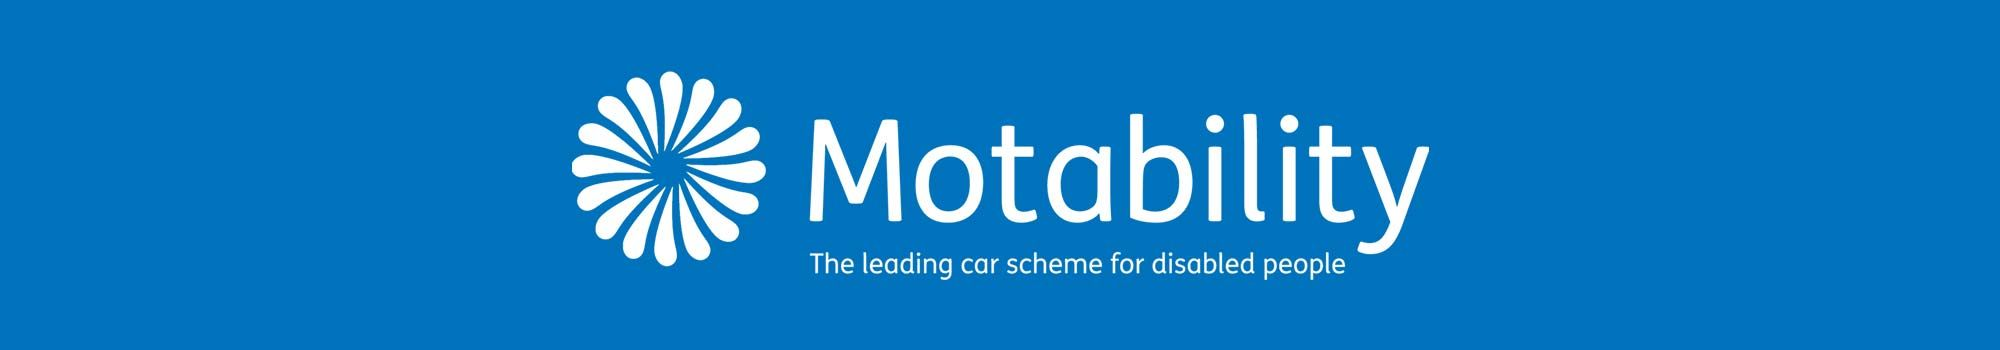 Motability at Perrys